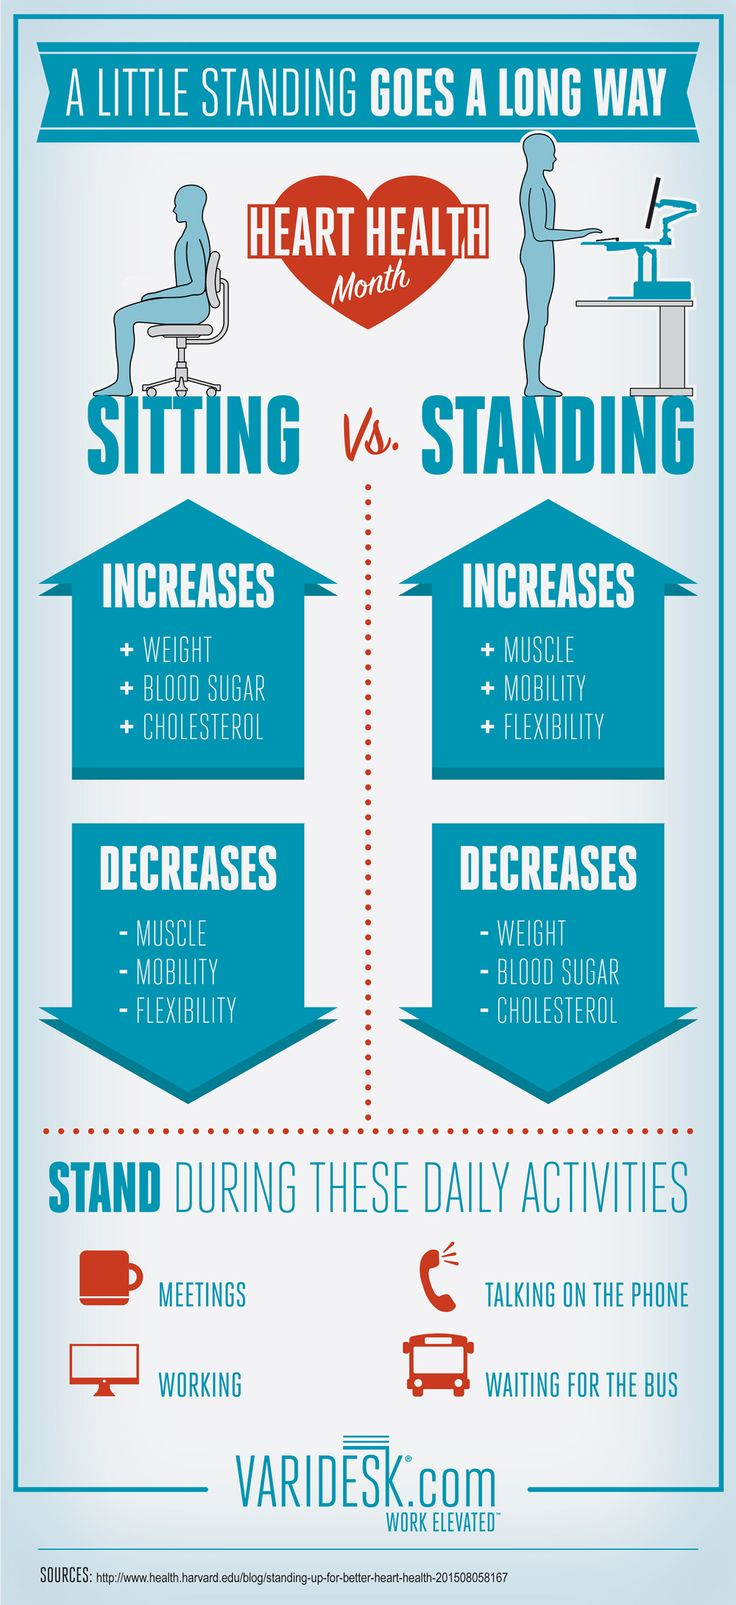 In honor of Heart Month, VARIDESK is highlighting some of the ways in which height-adjustable standing desks help to keep your heart healthy. Small changes to daily habits can yield big benefits down the line – check out our infographic to learn mo